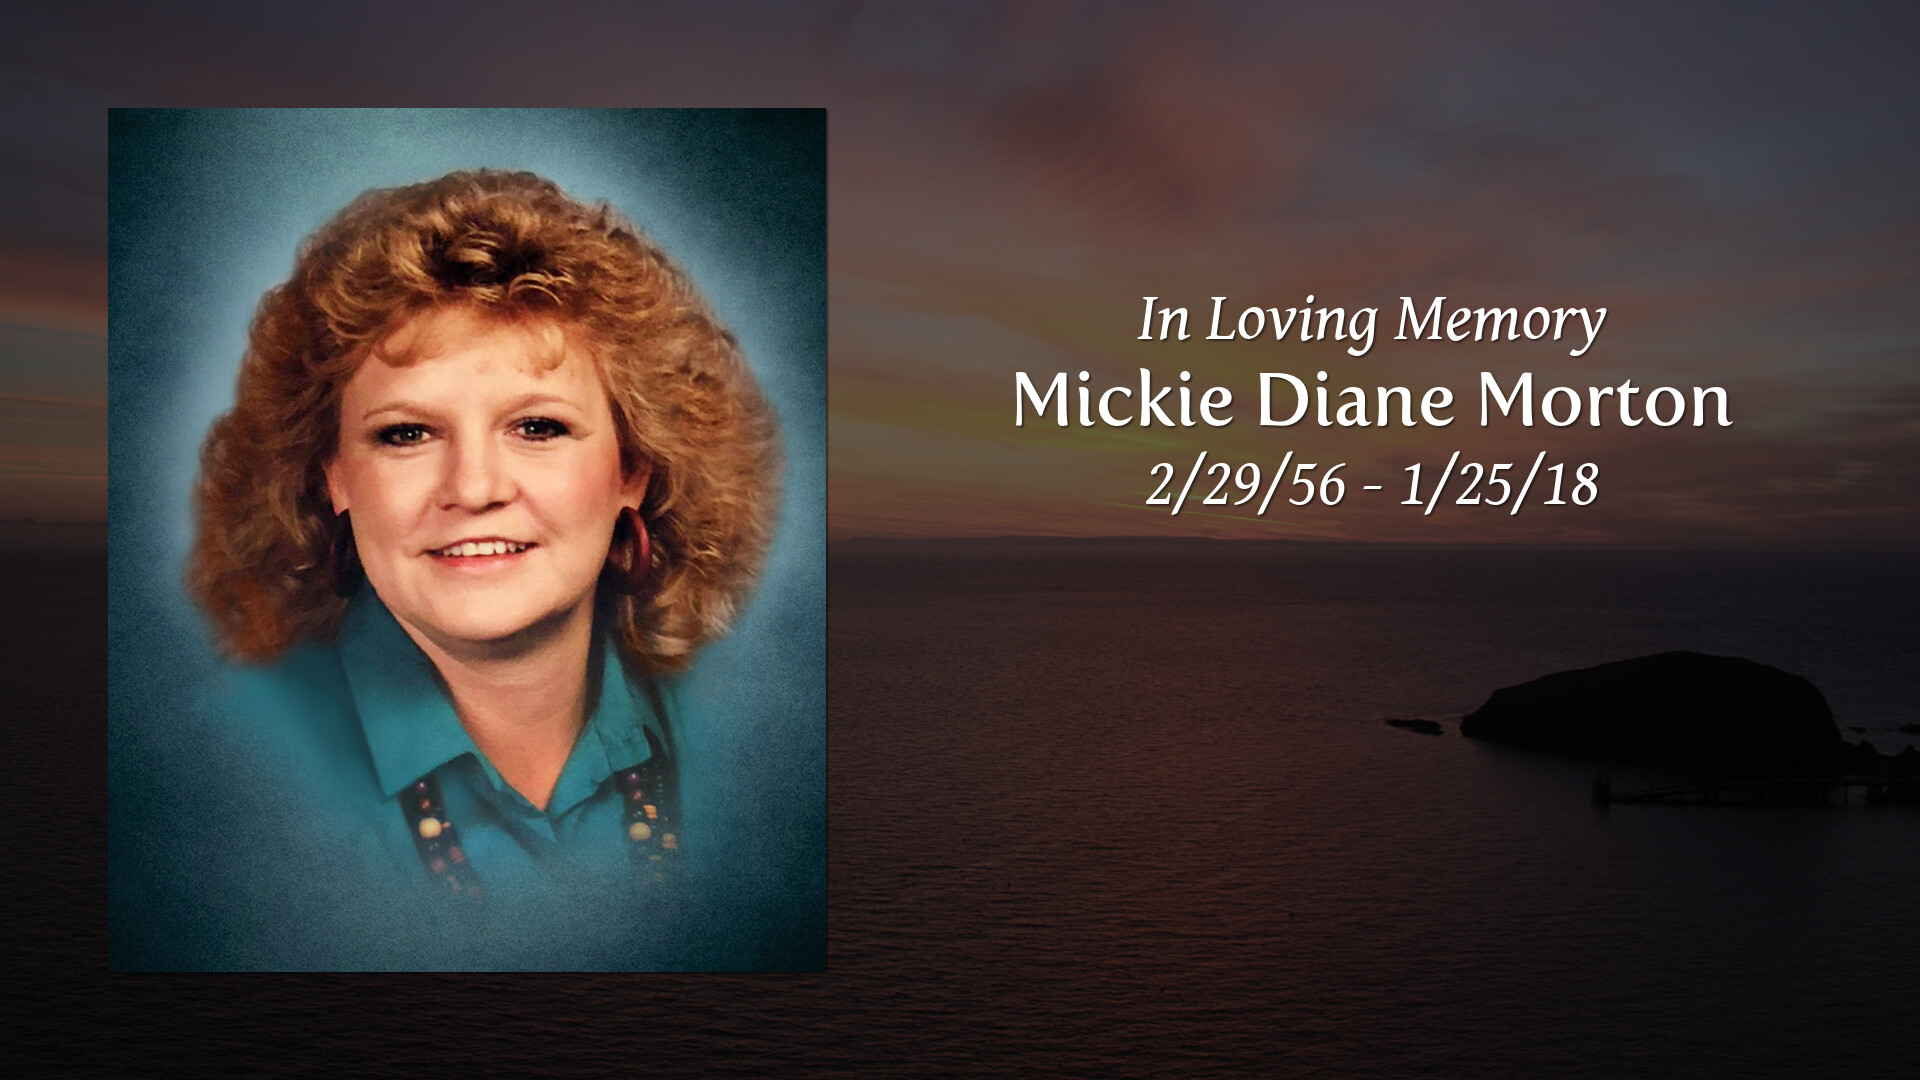 Obituary | Mickie Diane Morton of Boerne, Texas | Holt